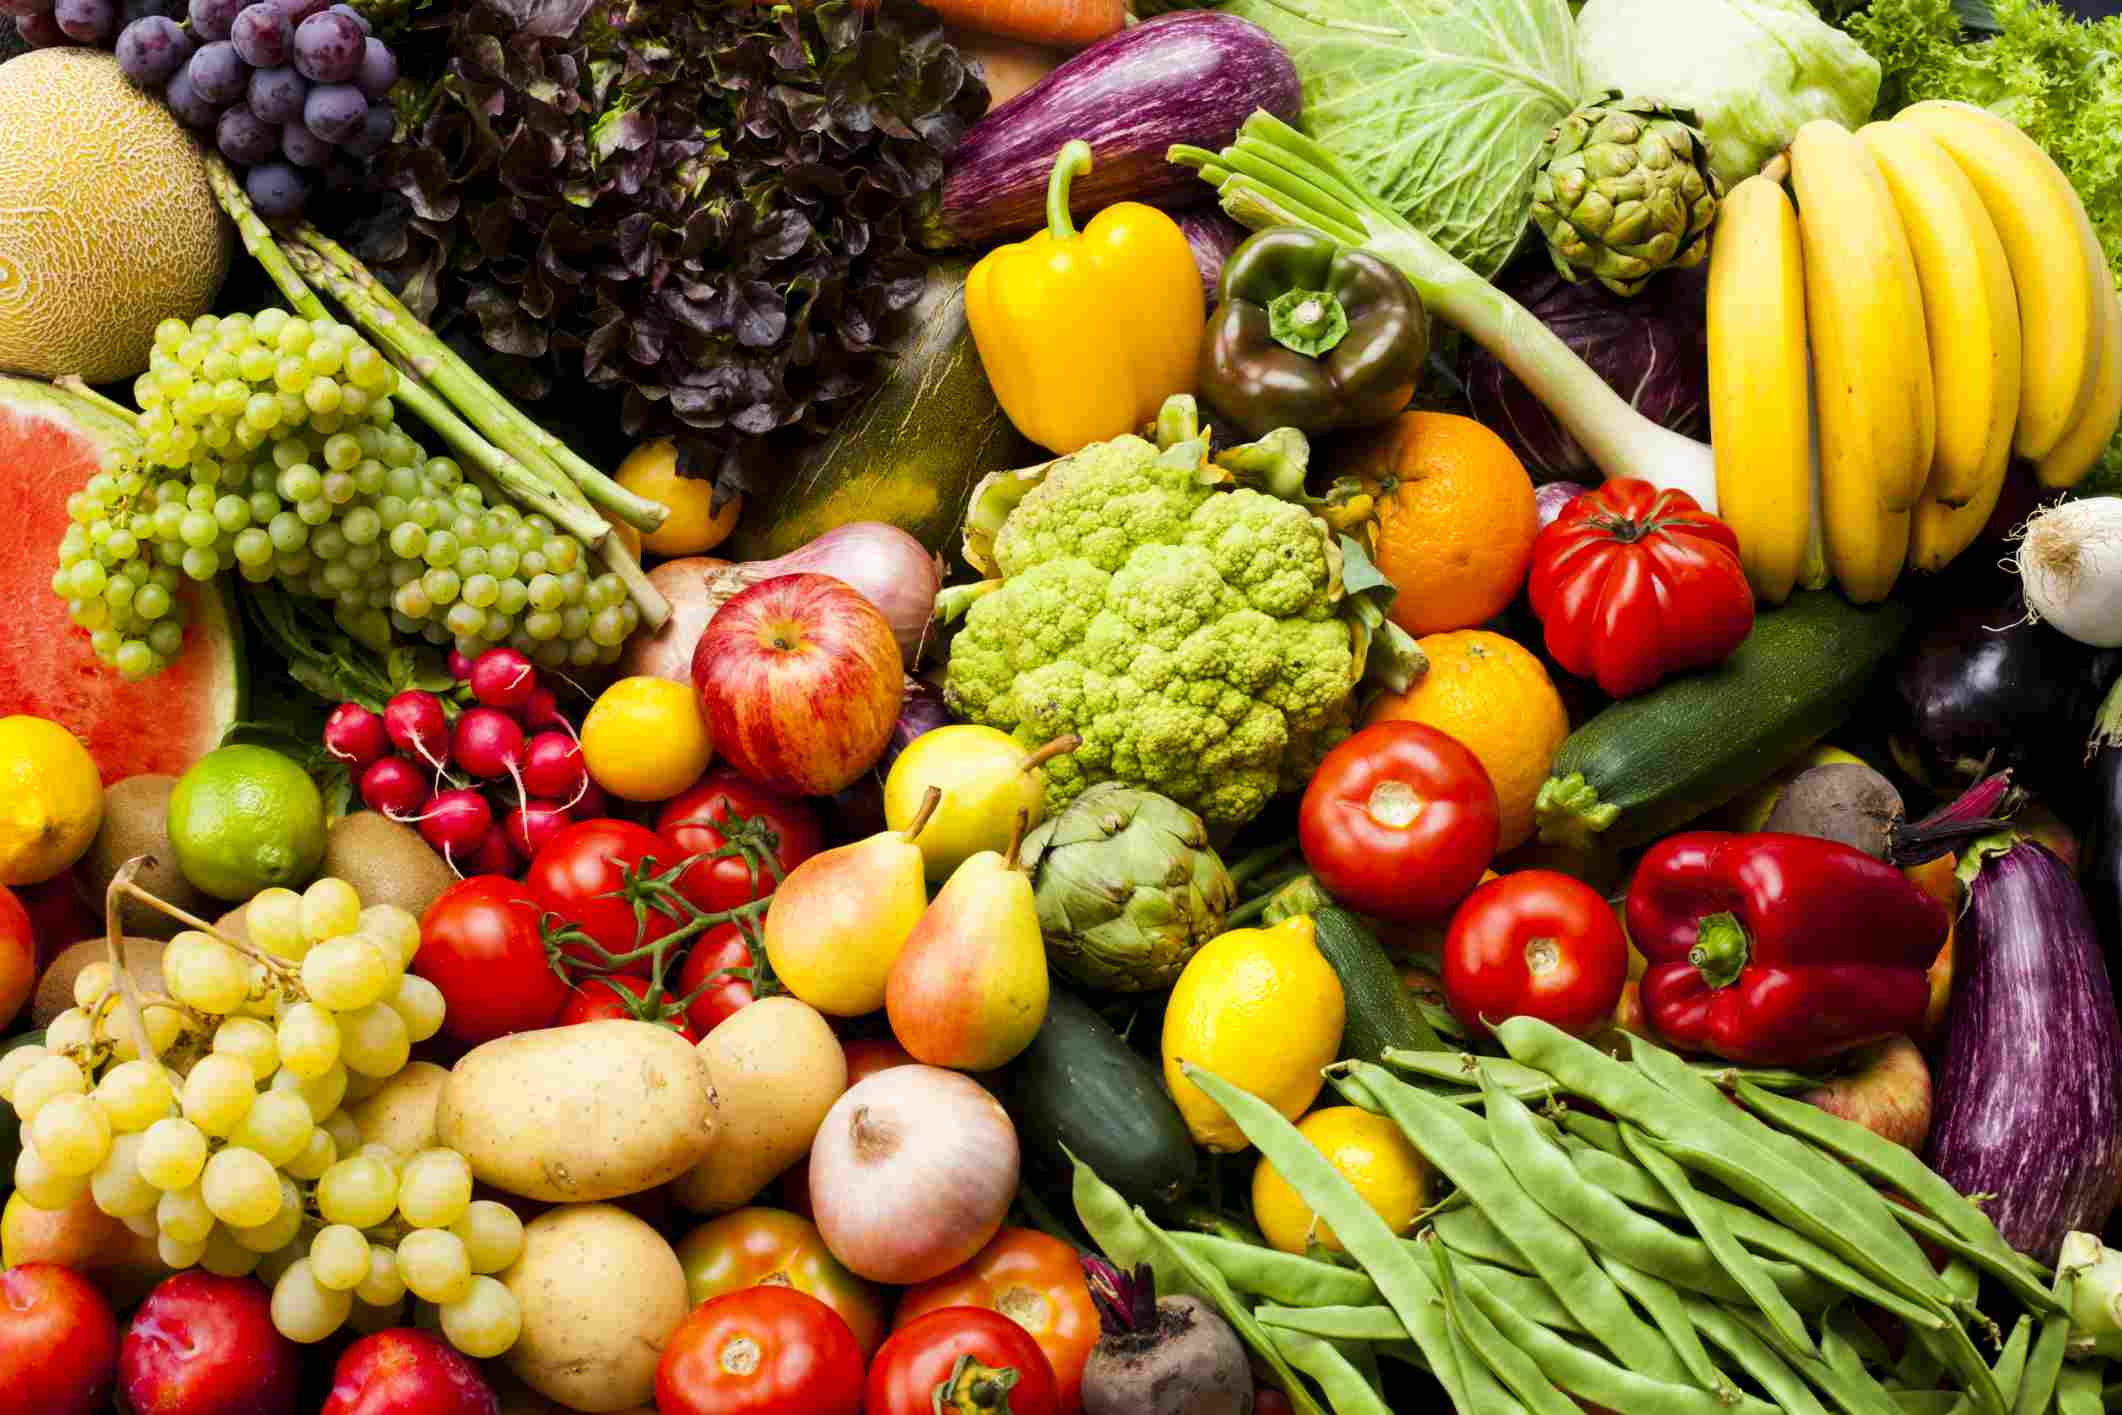 Pile of assorted fruits and vegetables